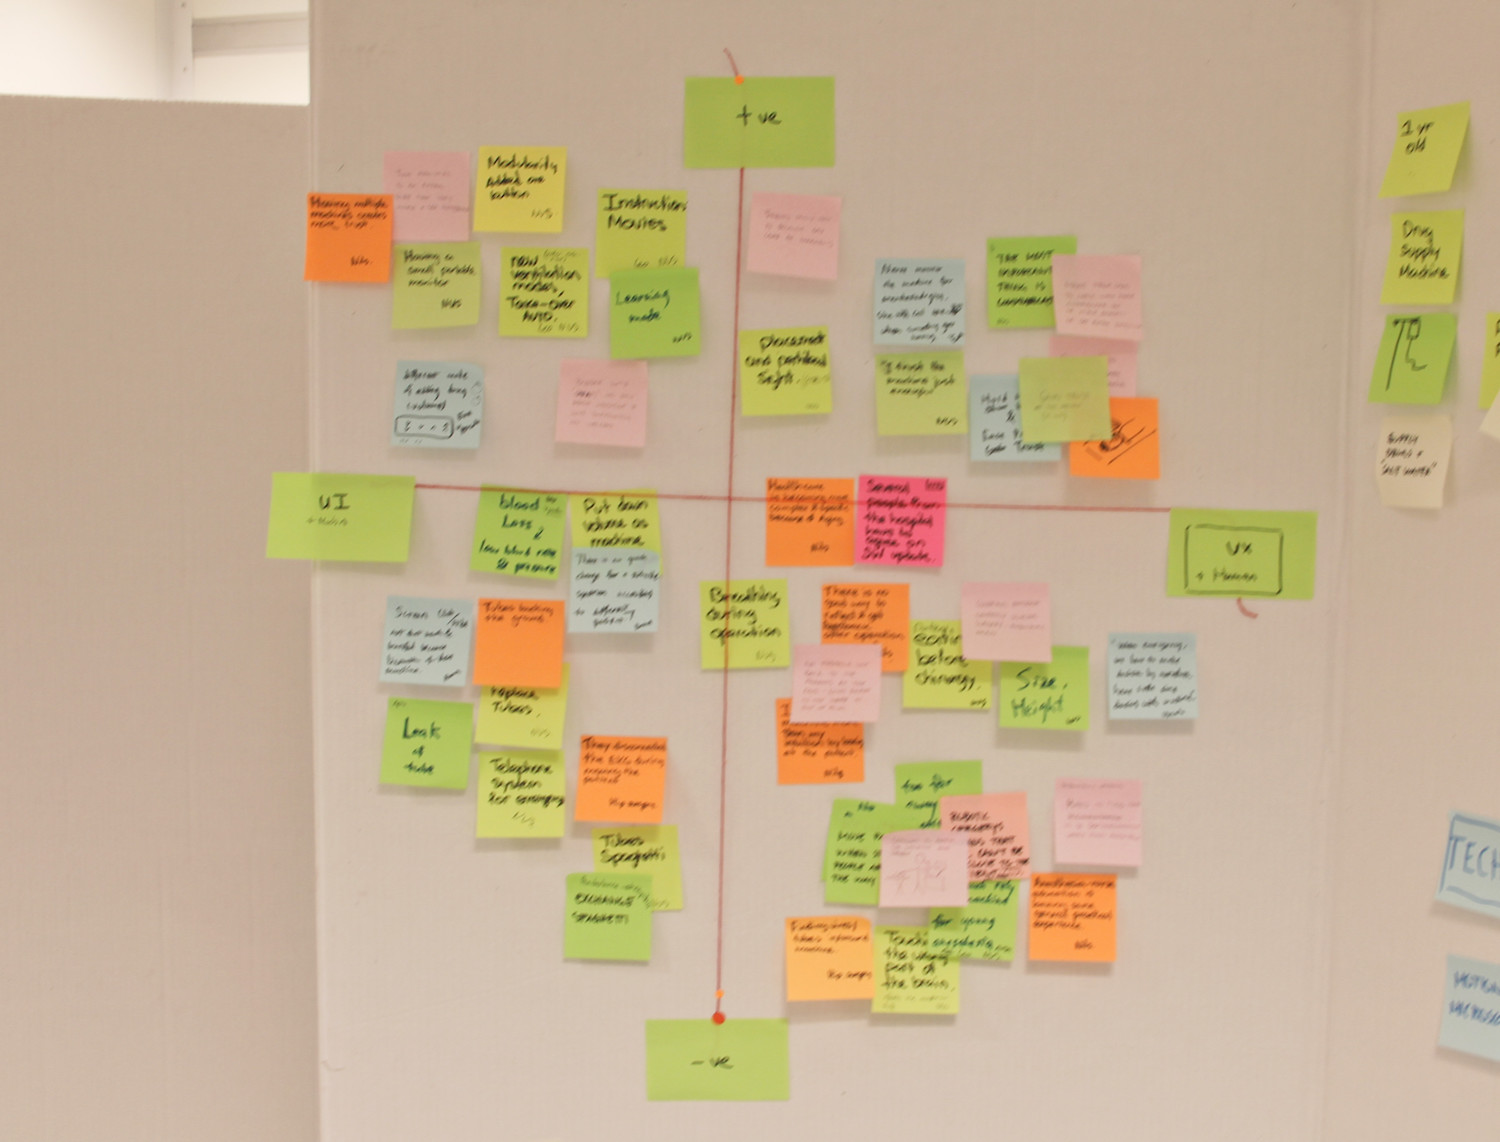 Map Out Problems and Opportunities in the Coordinate of Positive-Negative & UI-UX